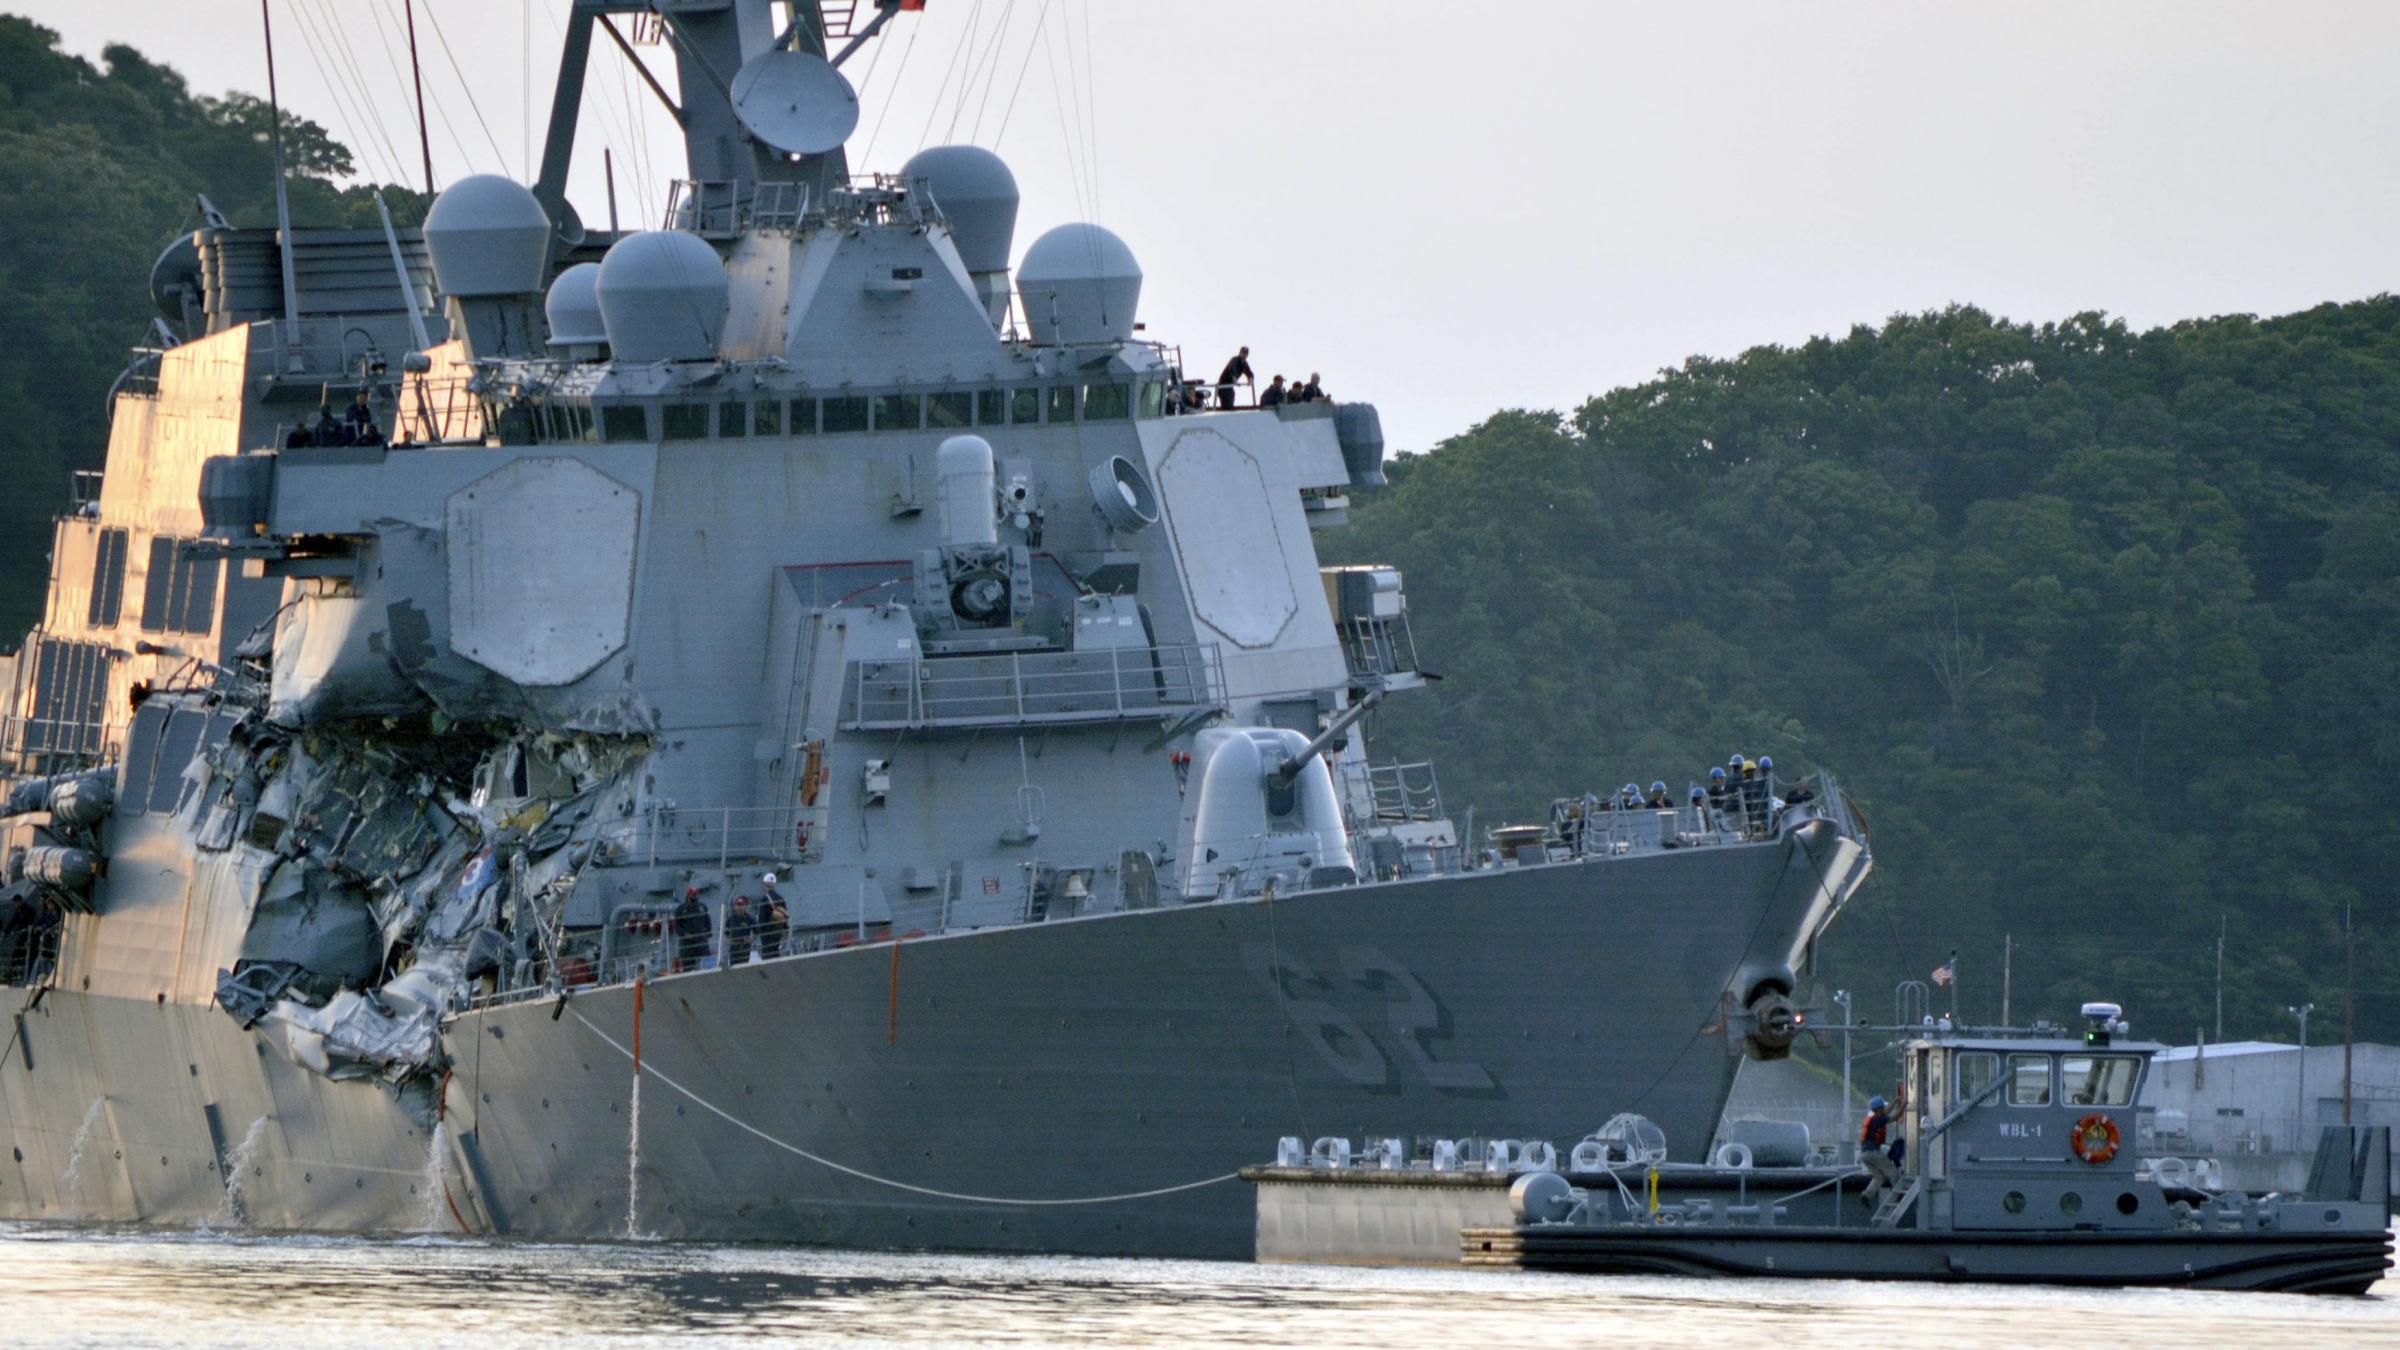 Missing US Sailors Found Dead Aboard Ship Following Collision